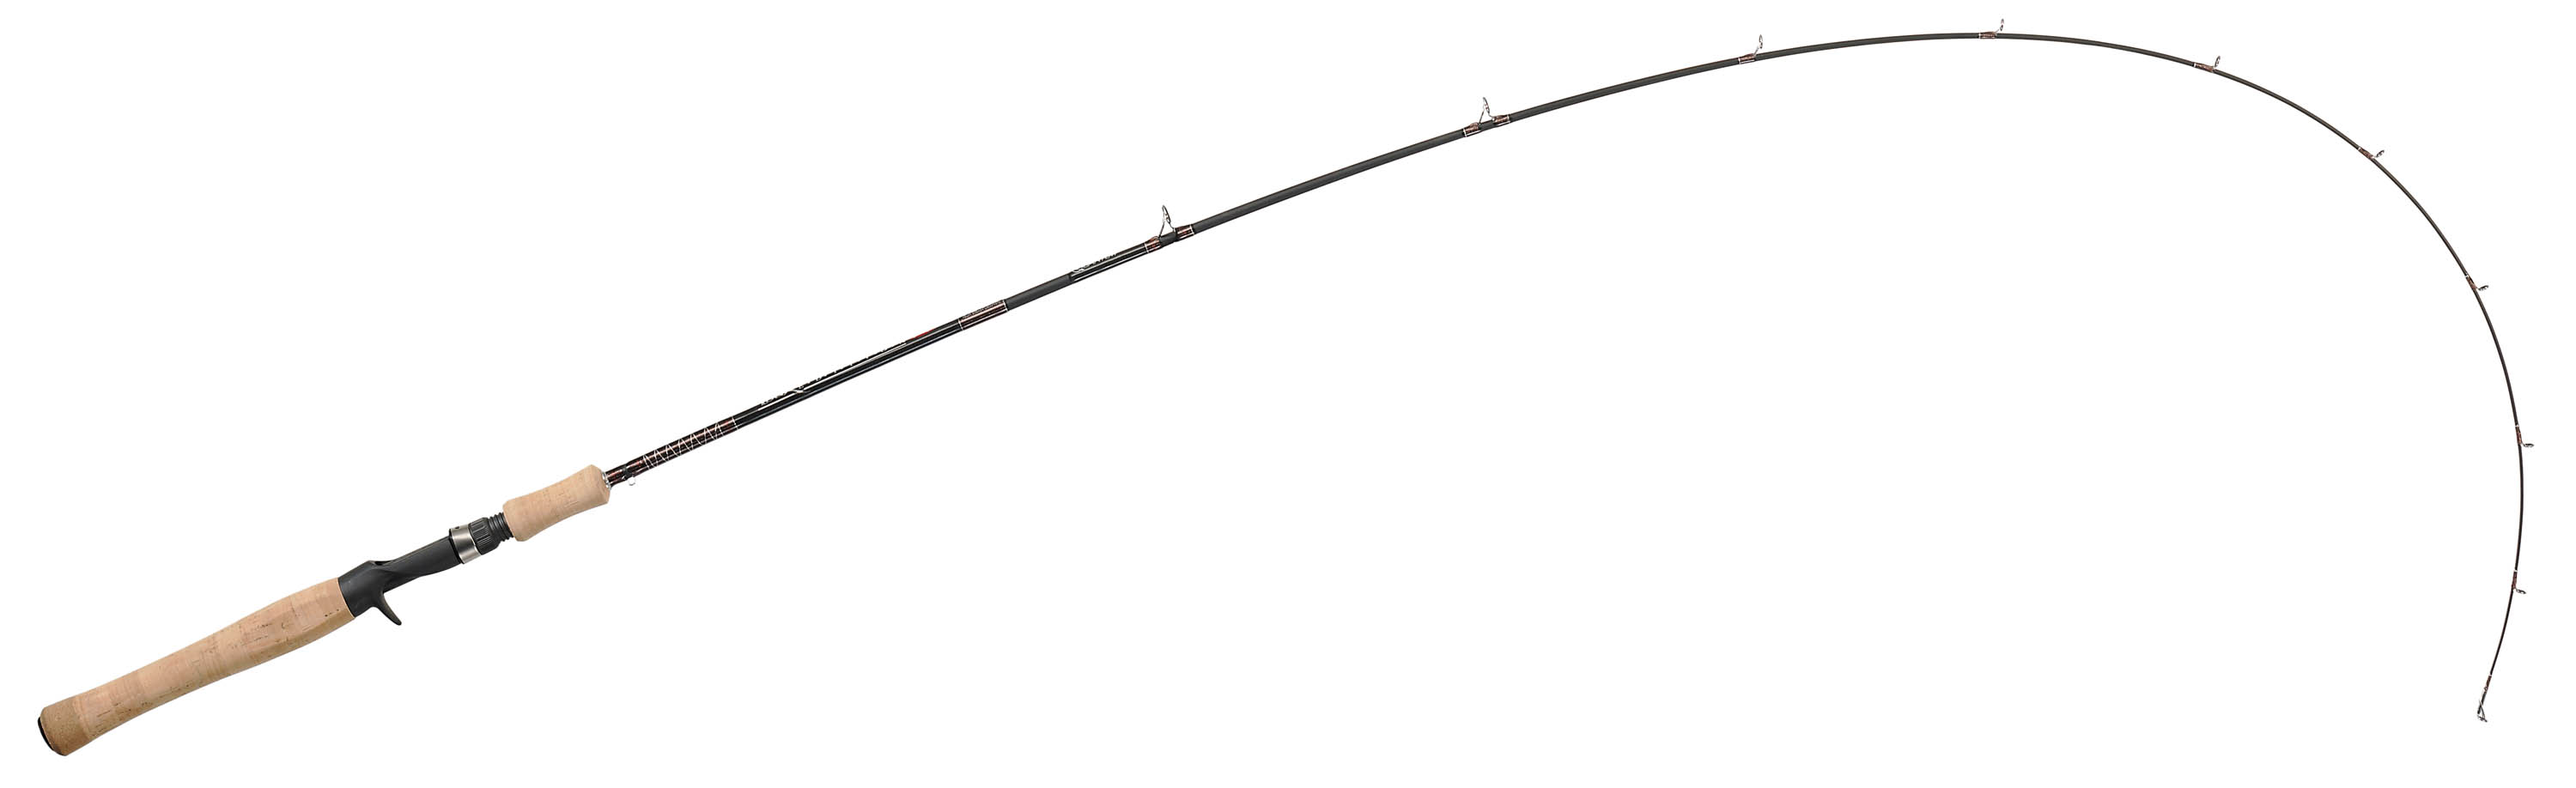 Bent Fishing Pole Clipart - Clipart Suggest